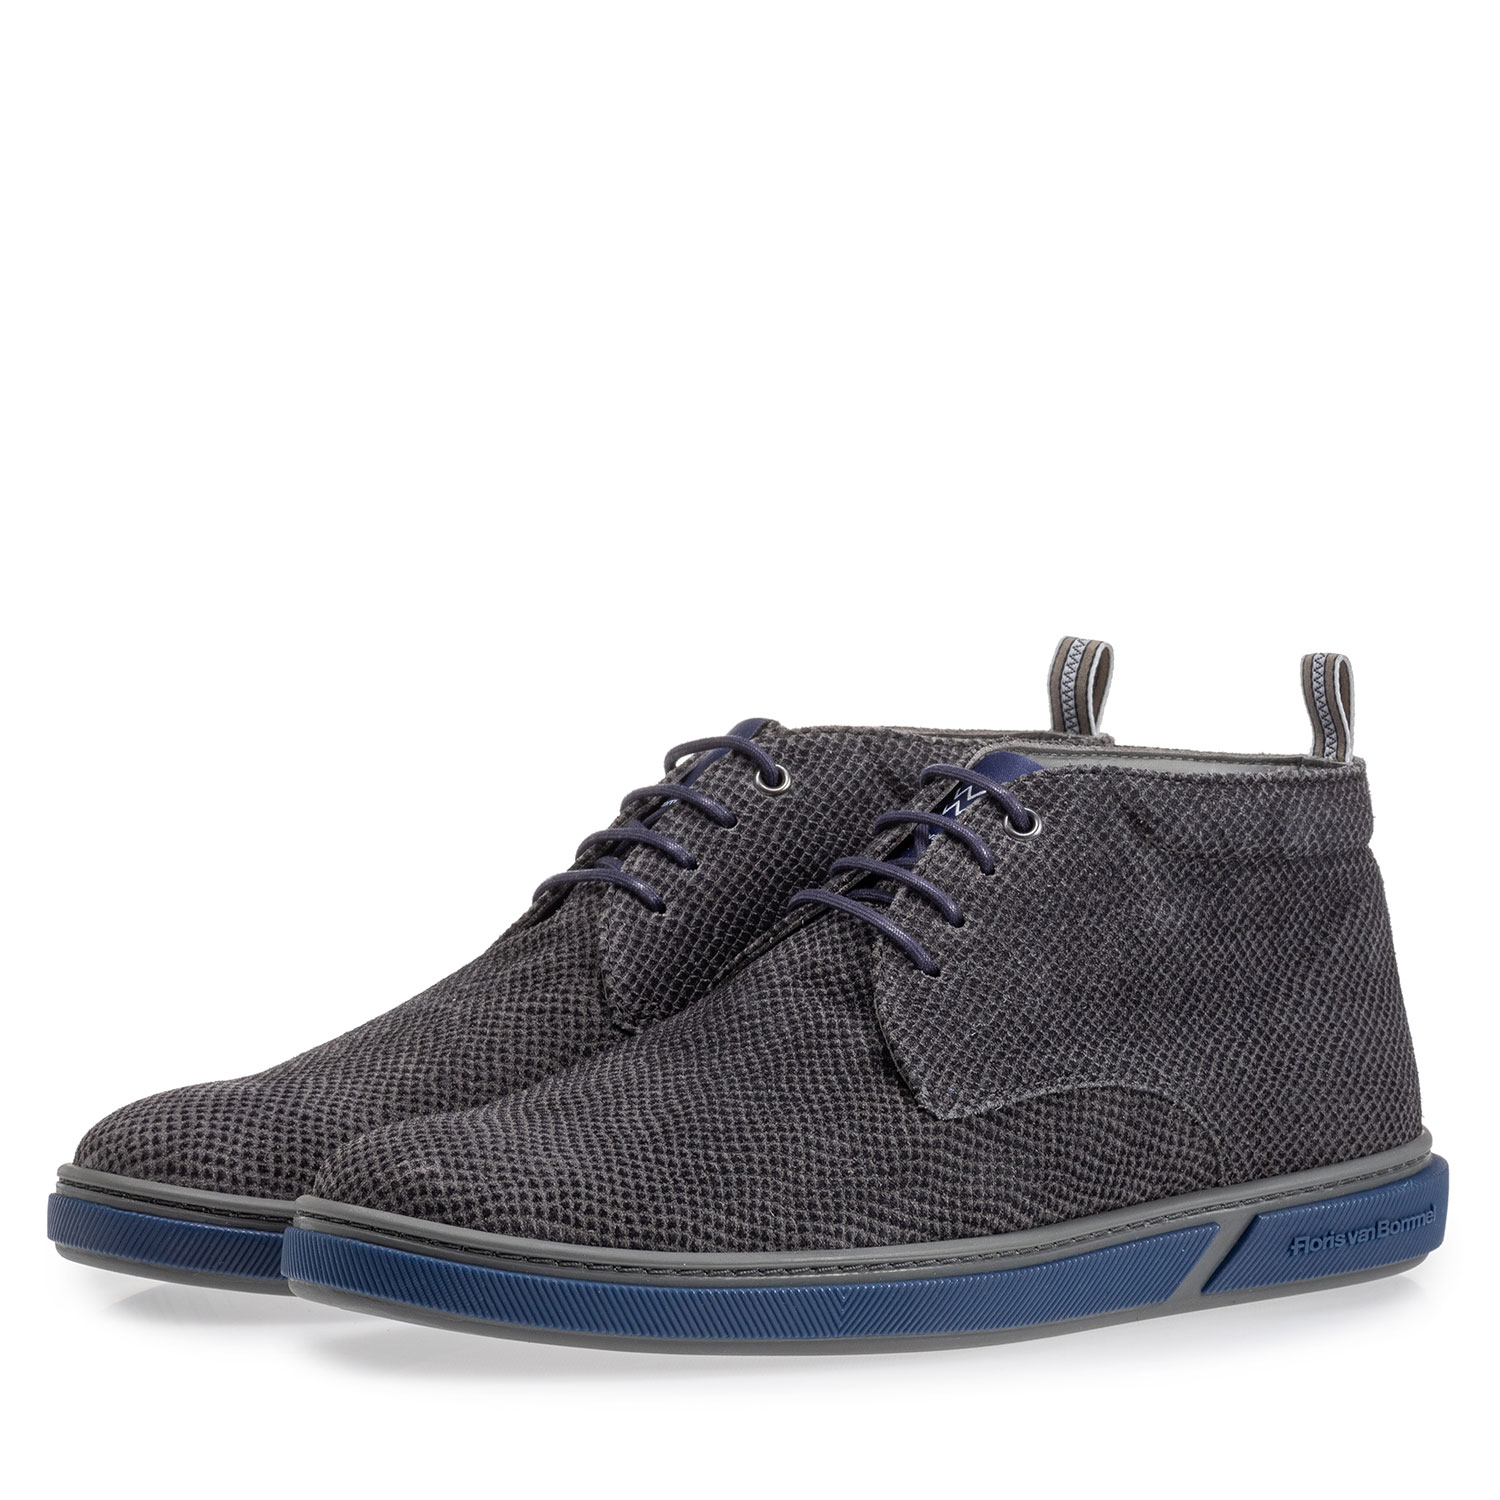 20350/17 - Lace boot grey with print